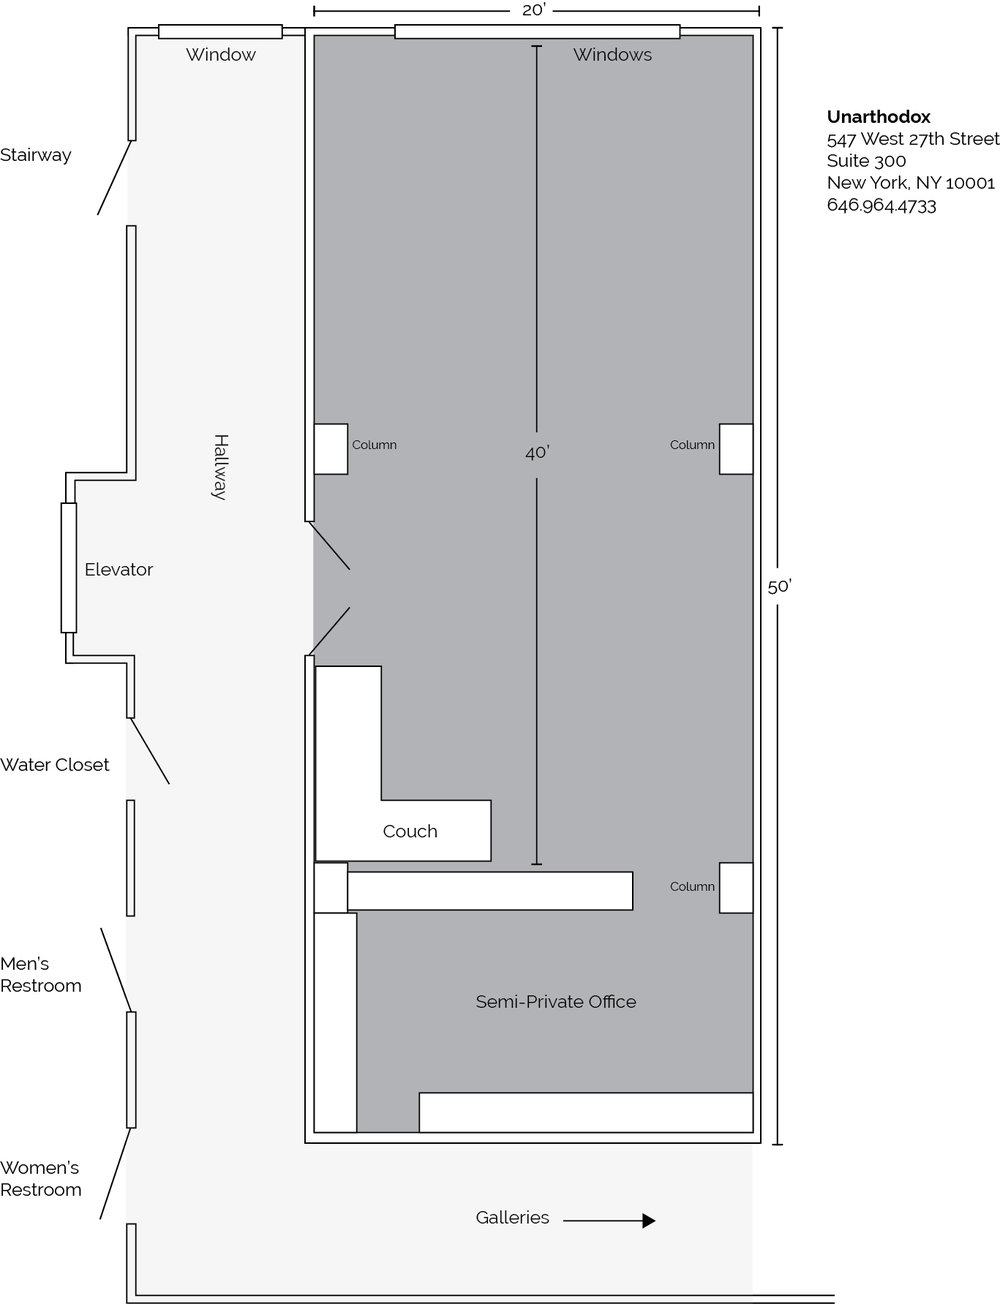 Unarthodox_FloorPlan_SpaceRental